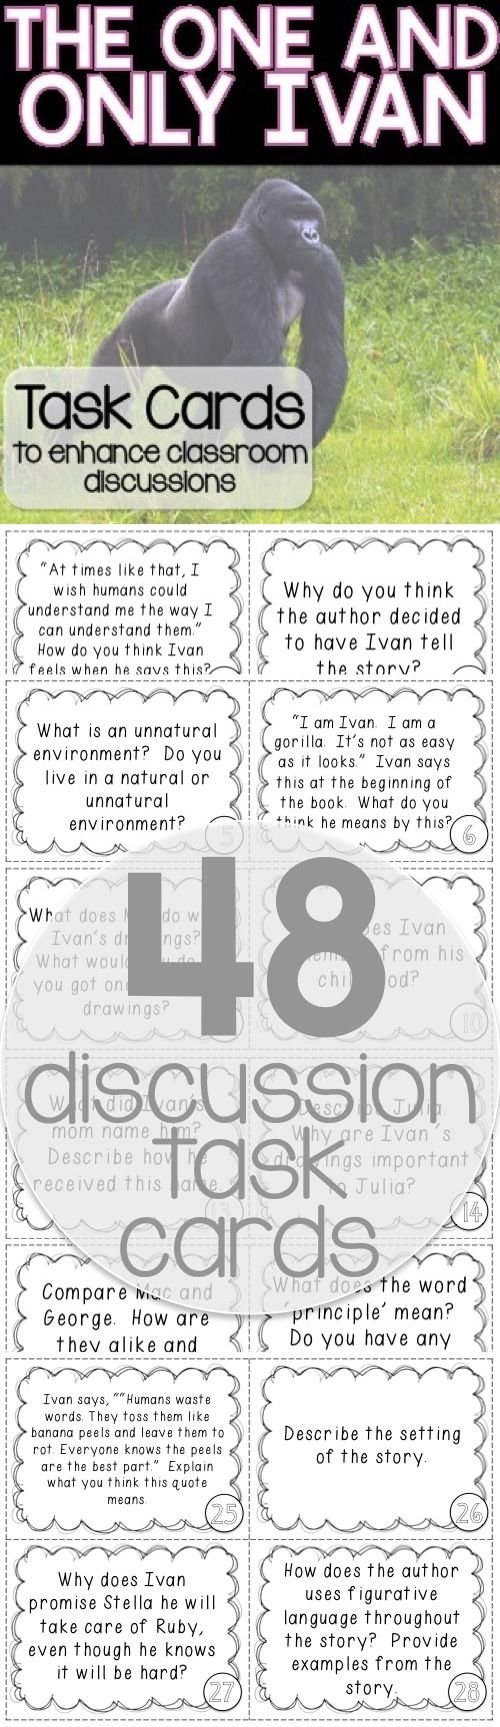 48 task cards to spark discussion while reading The One and Only Ivan